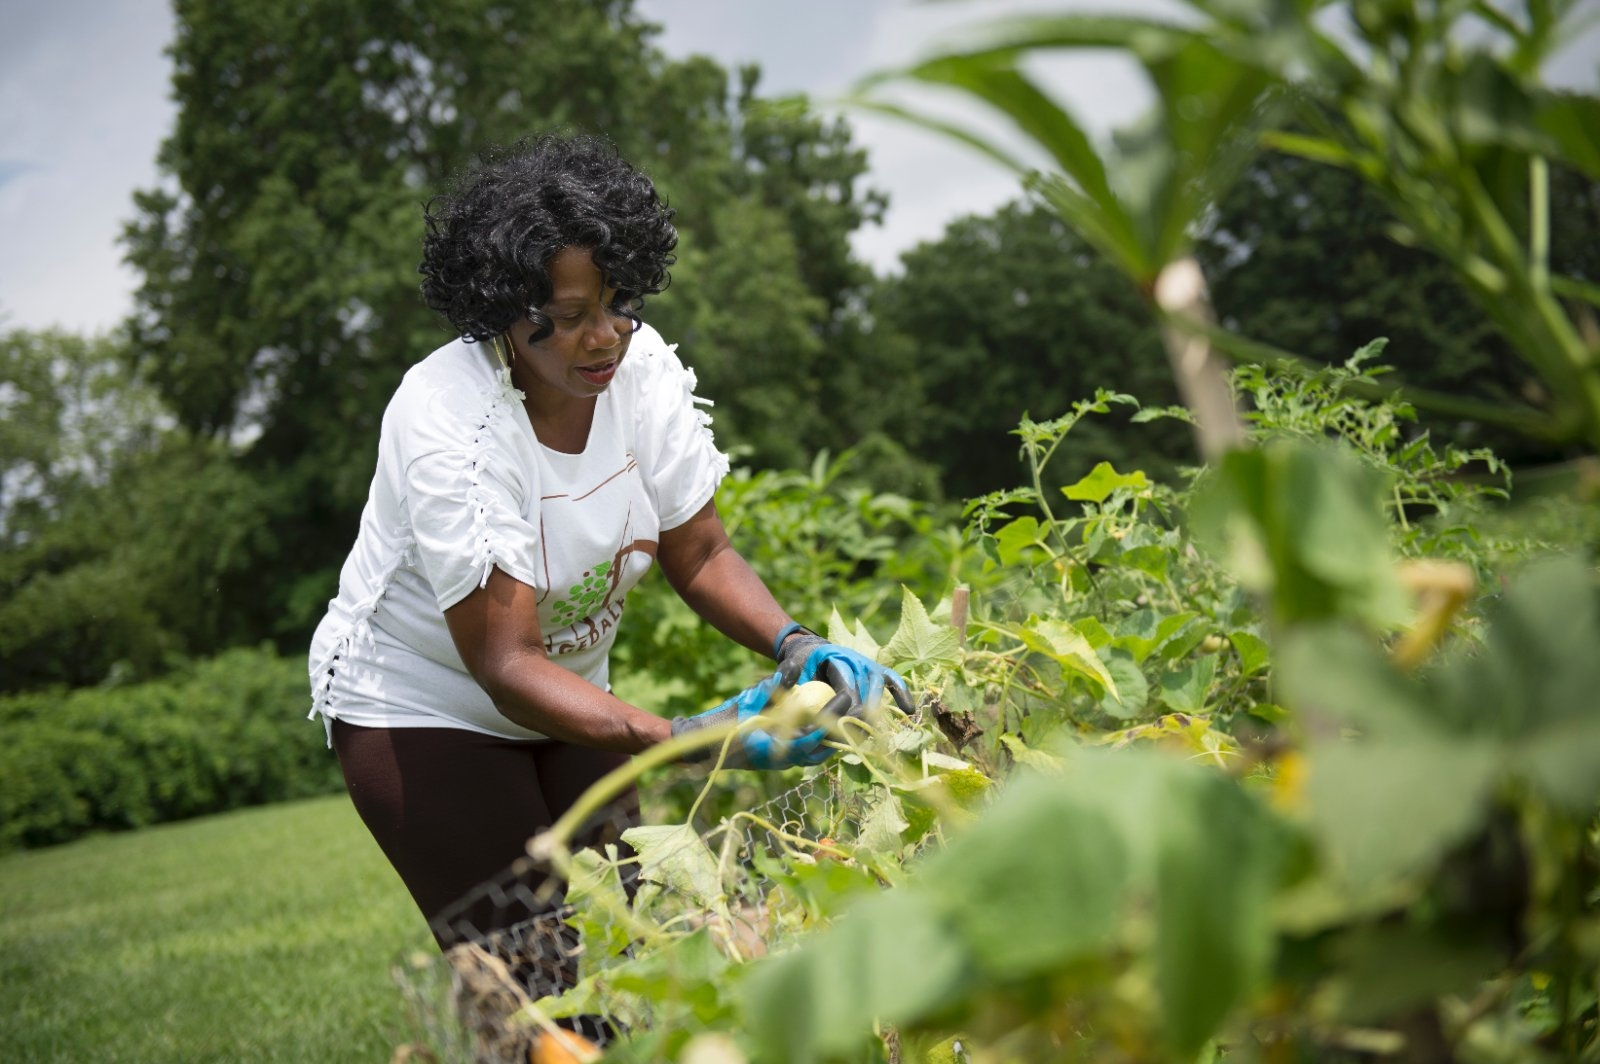 A woman works in the community garden